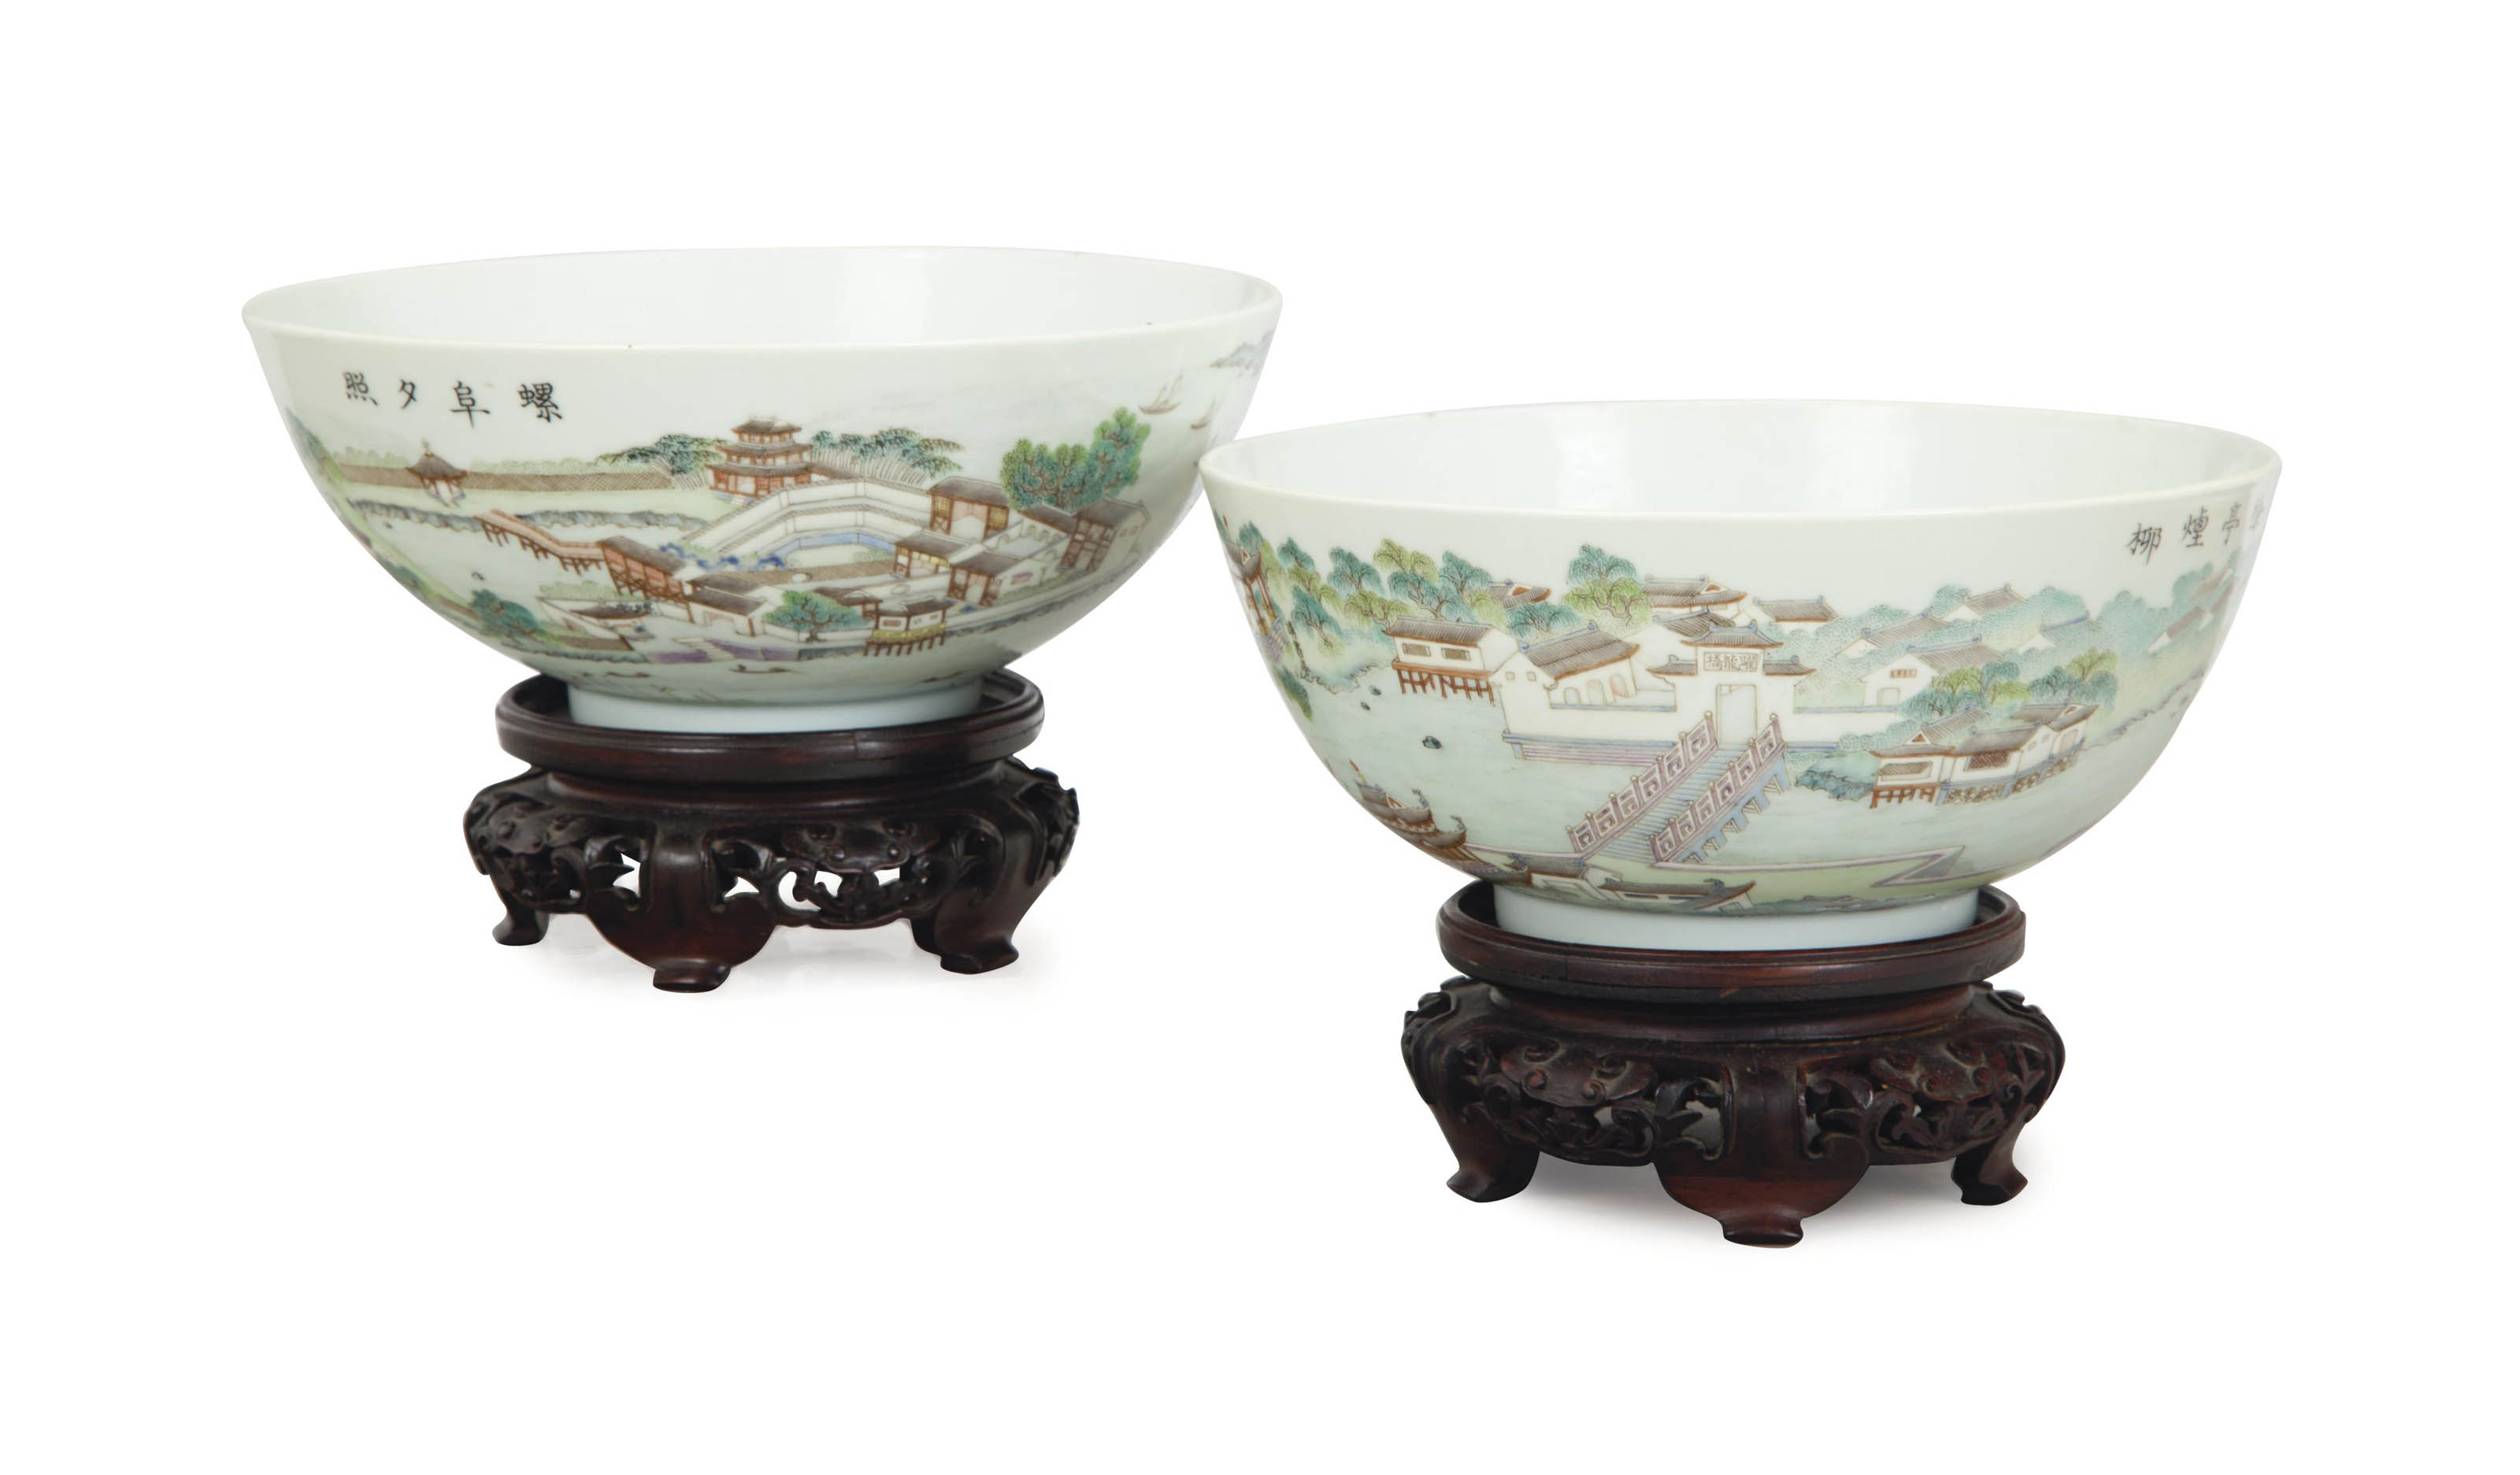 A PAIR OF CHINESE ENAMELED BOW